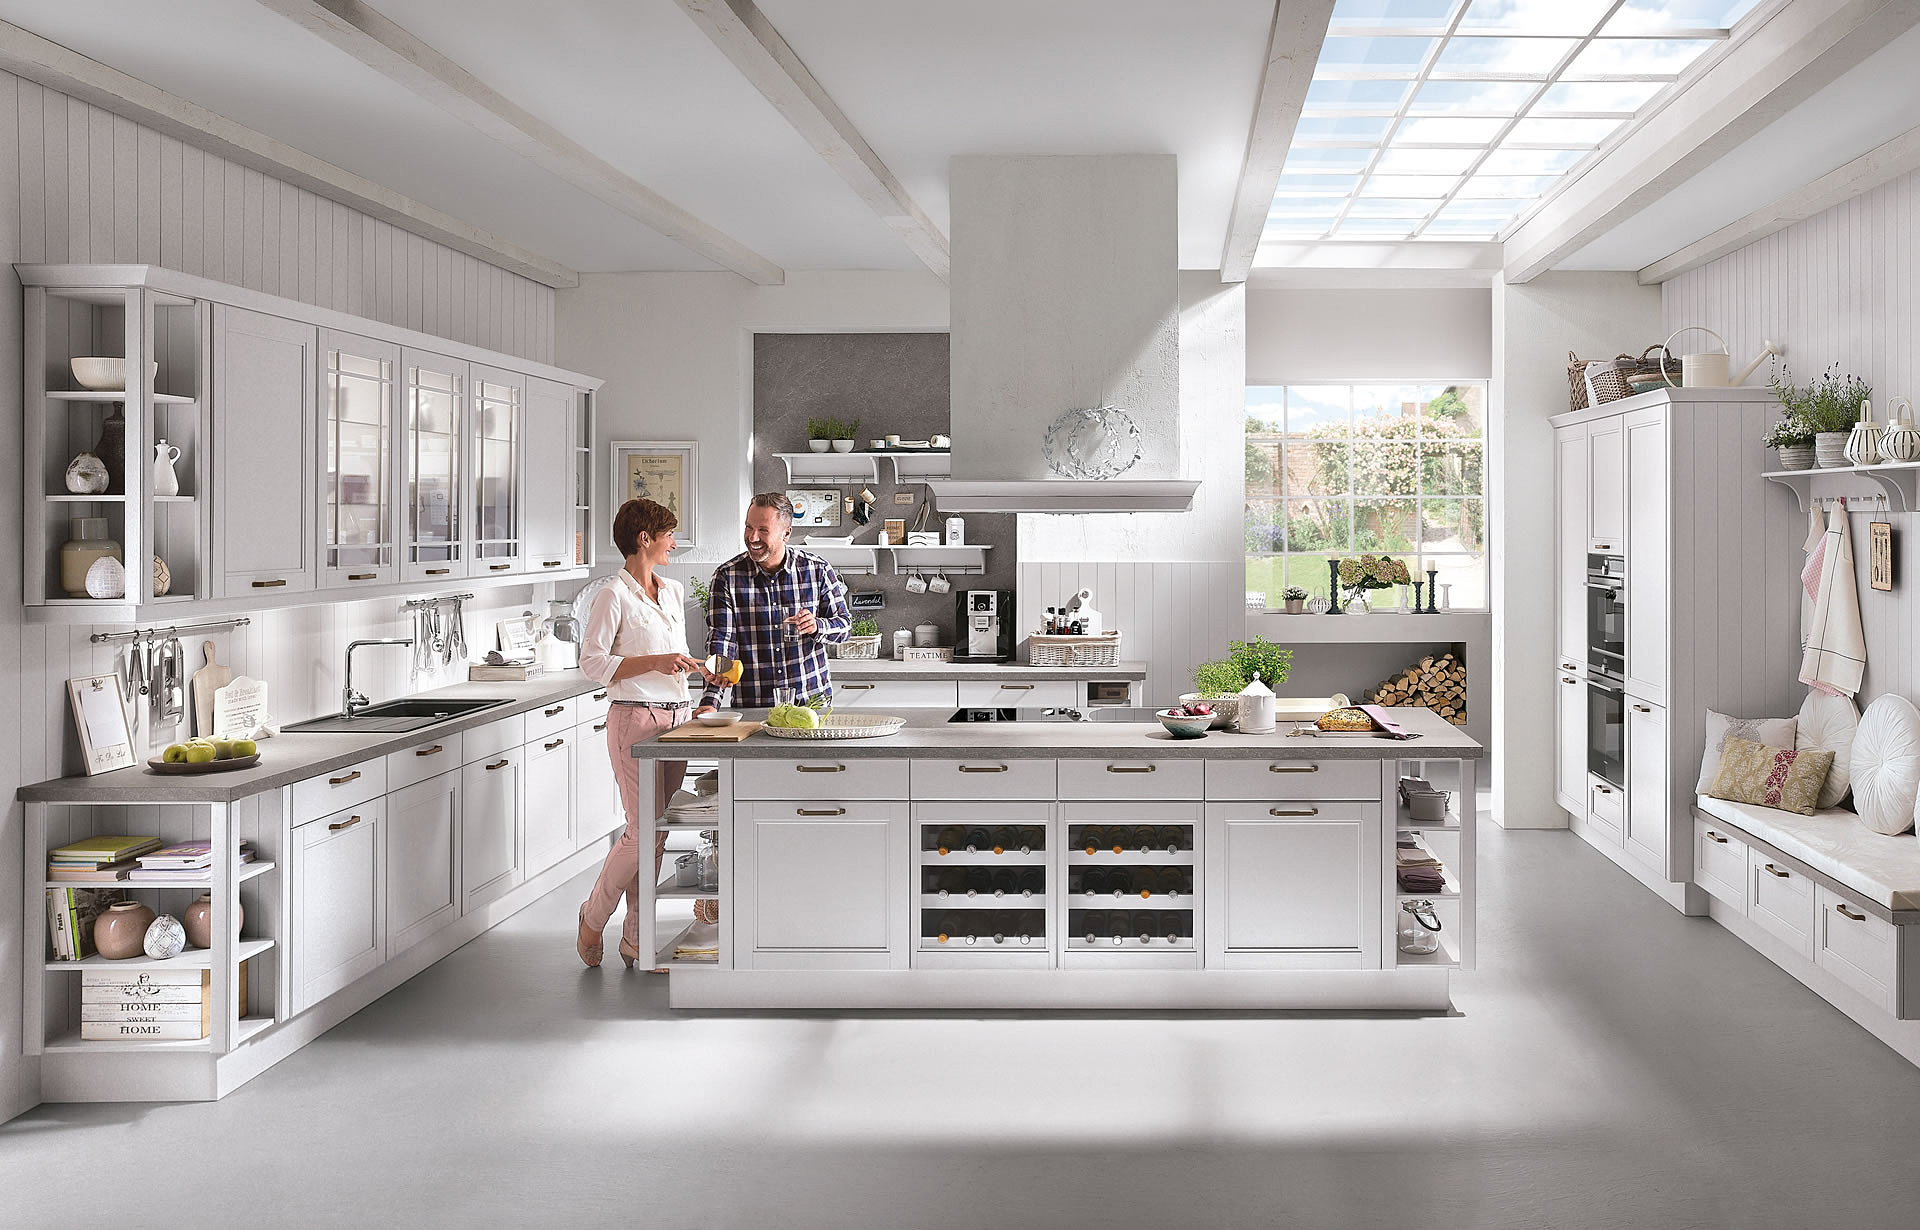 traditional kitchen for your kitchen remodeling project in katy and houston texas